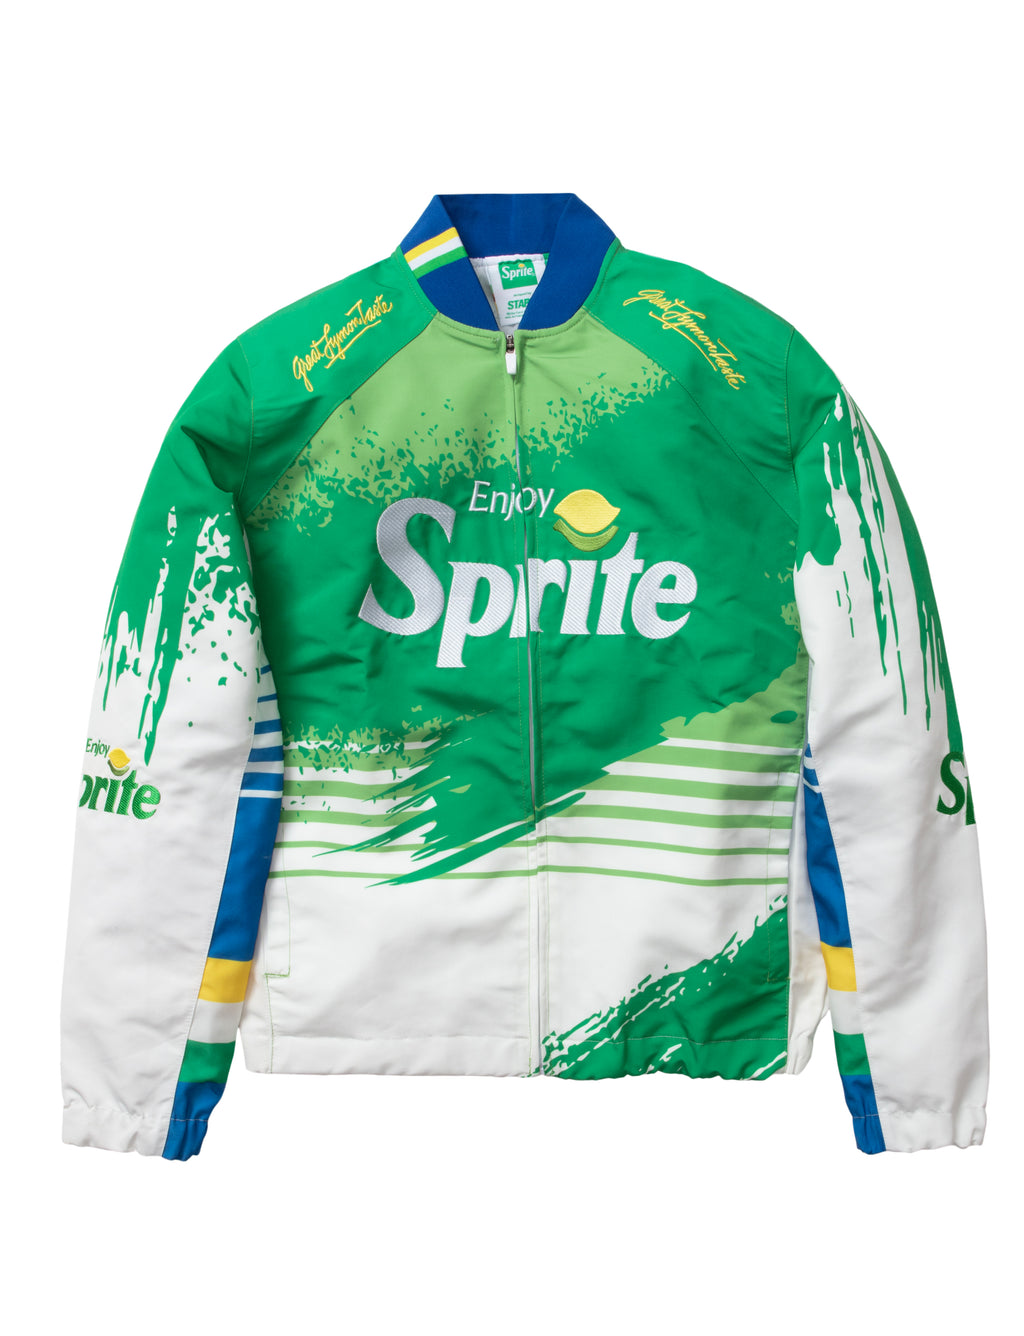 Sprite Racing Jacket - Jacket | Staple Pigeon